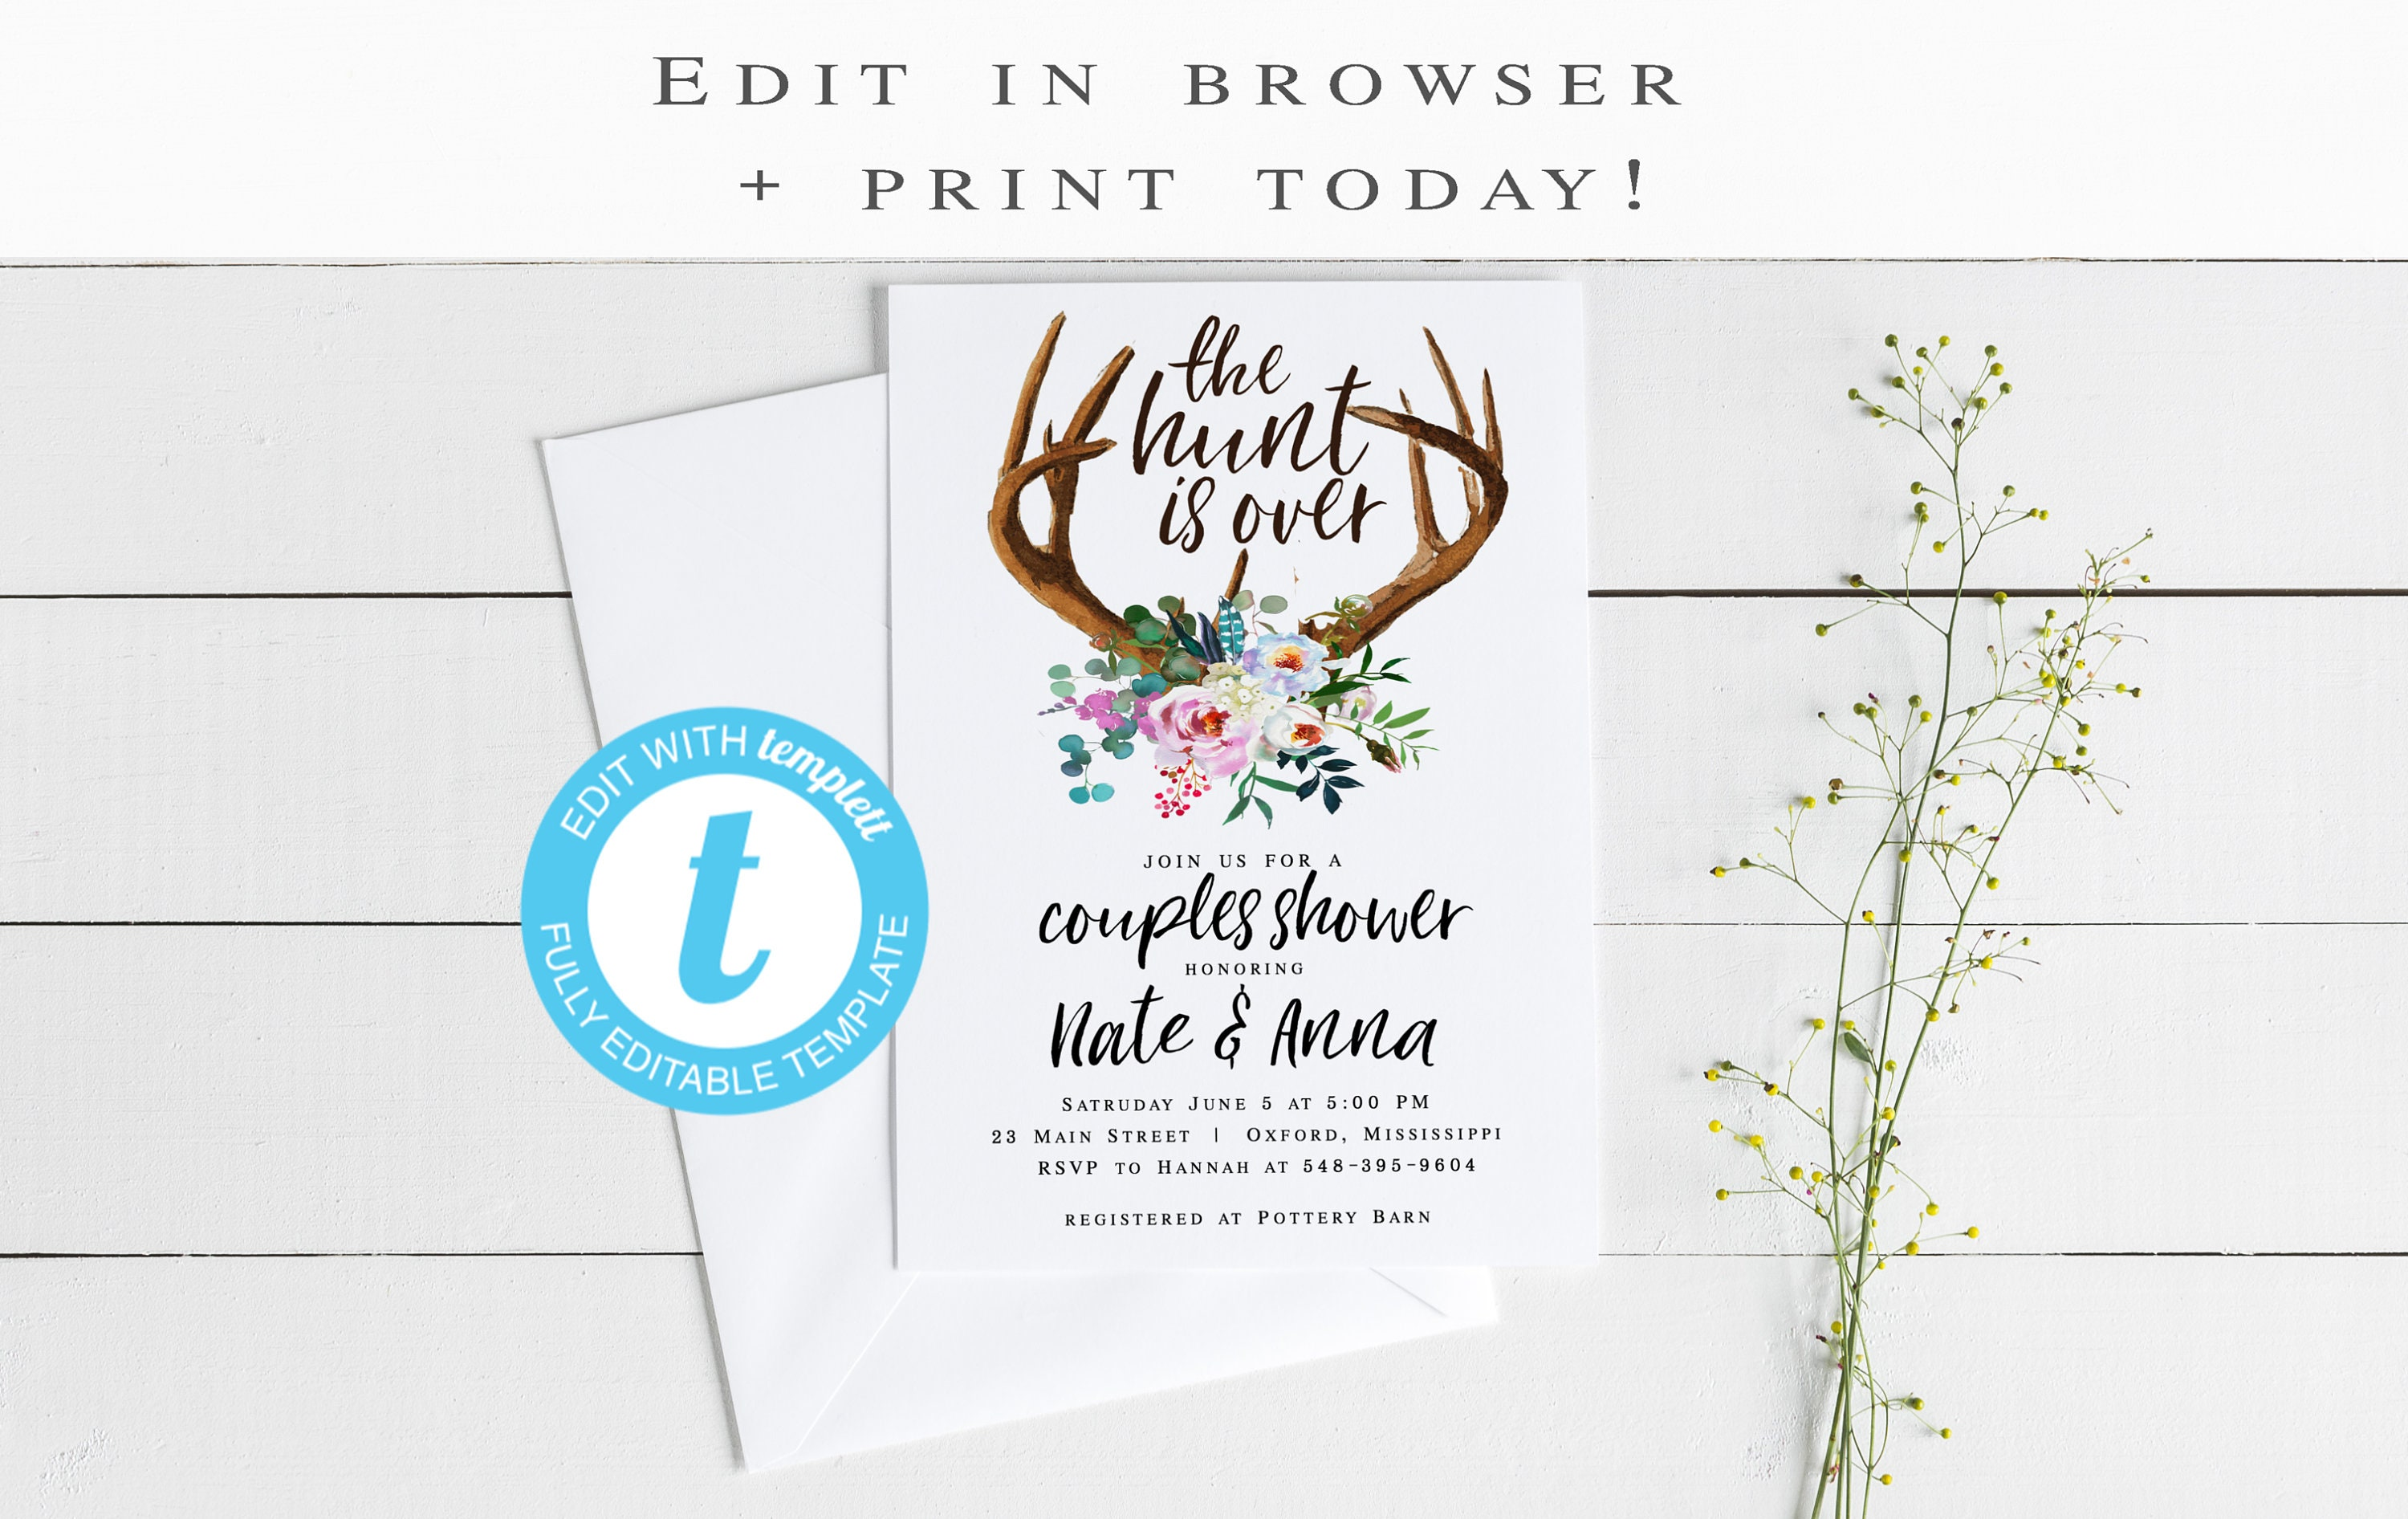 The Hunt is Over Bridal Shower Invitation Engagement